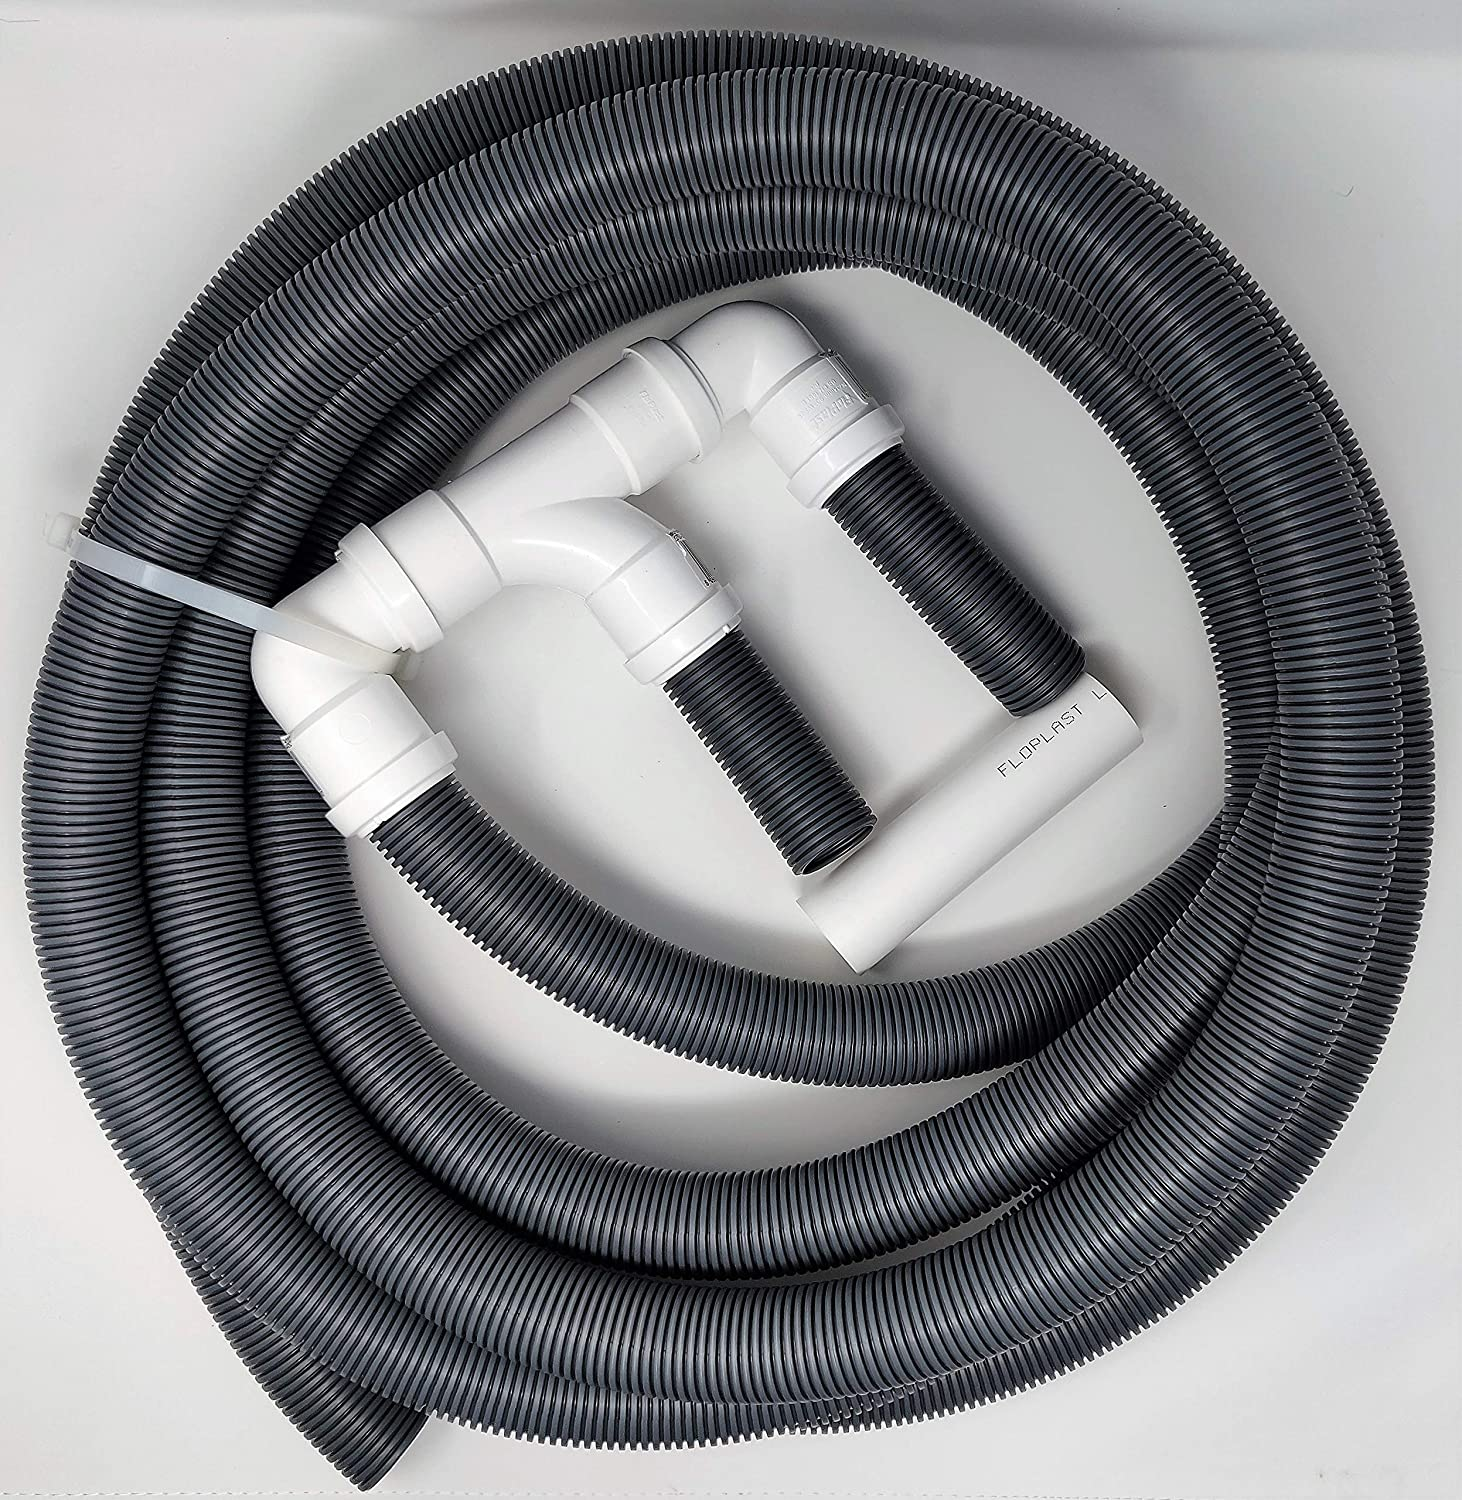 BITS4REASONS NEW 2019 MODEL DOUBLE CARAVAN TWIN CARAVAN WASTE WATER OUTLET PIPE SYSTEM WITH 10 METRE SITE PIPE OPTION WITH FLOPLAST HOME PLUMBING GRADE FITTINGS CE STANDARD TESTED TO EN 1451